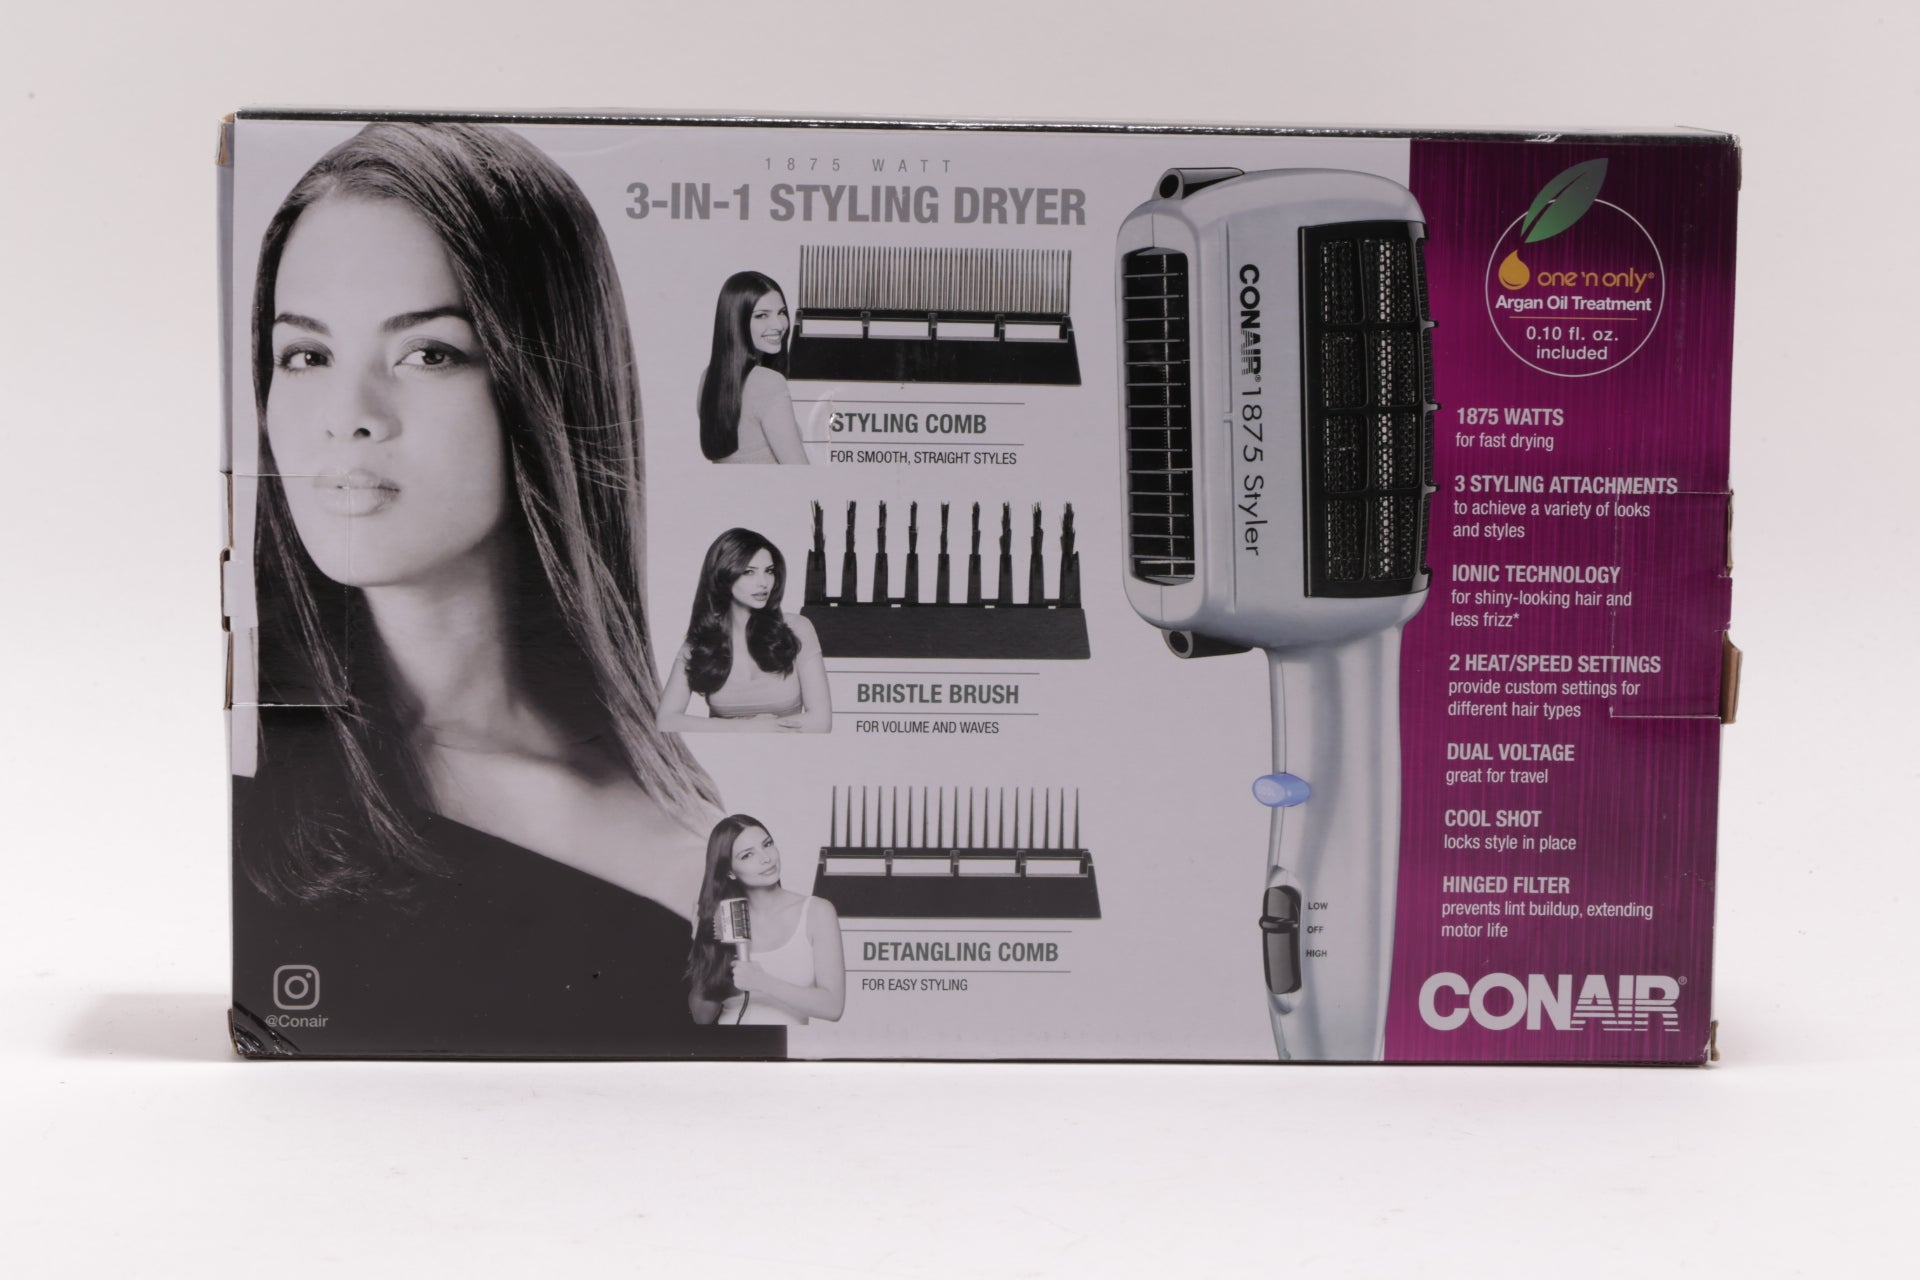 Brand New Conair 1875 Watt 3-in-1 Styling Hair Dryer SD6WMR